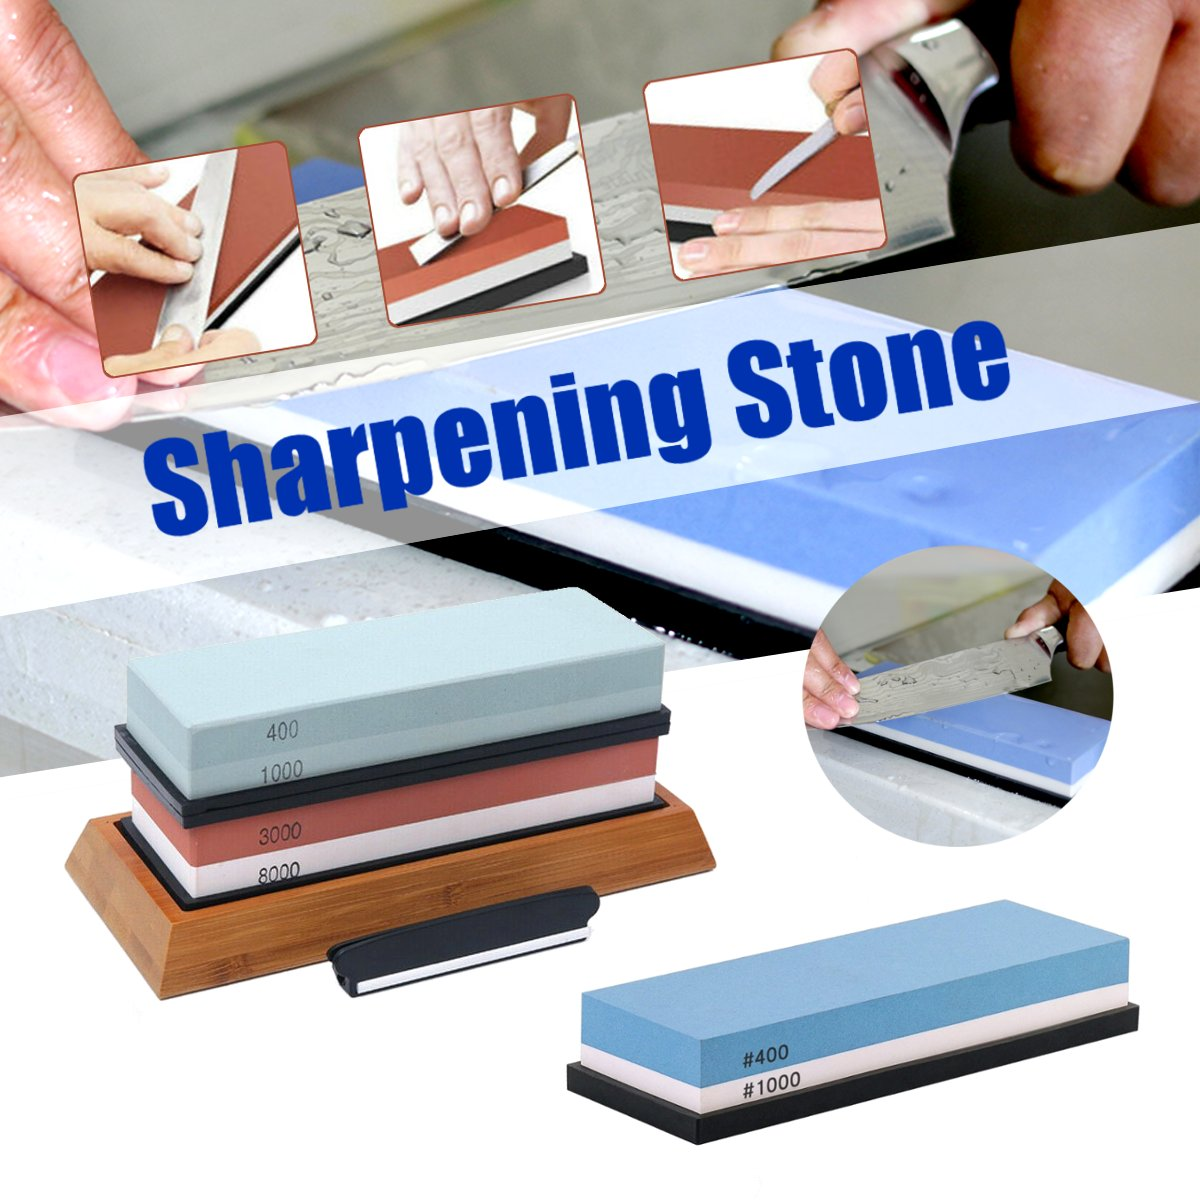 3000/8000 / 400/1000 Grit Professional Knife Sharpener Sharpening Stone For A Knife Stone <font><b>Whetstone</b></font> Honing Oilstone Water Stones image